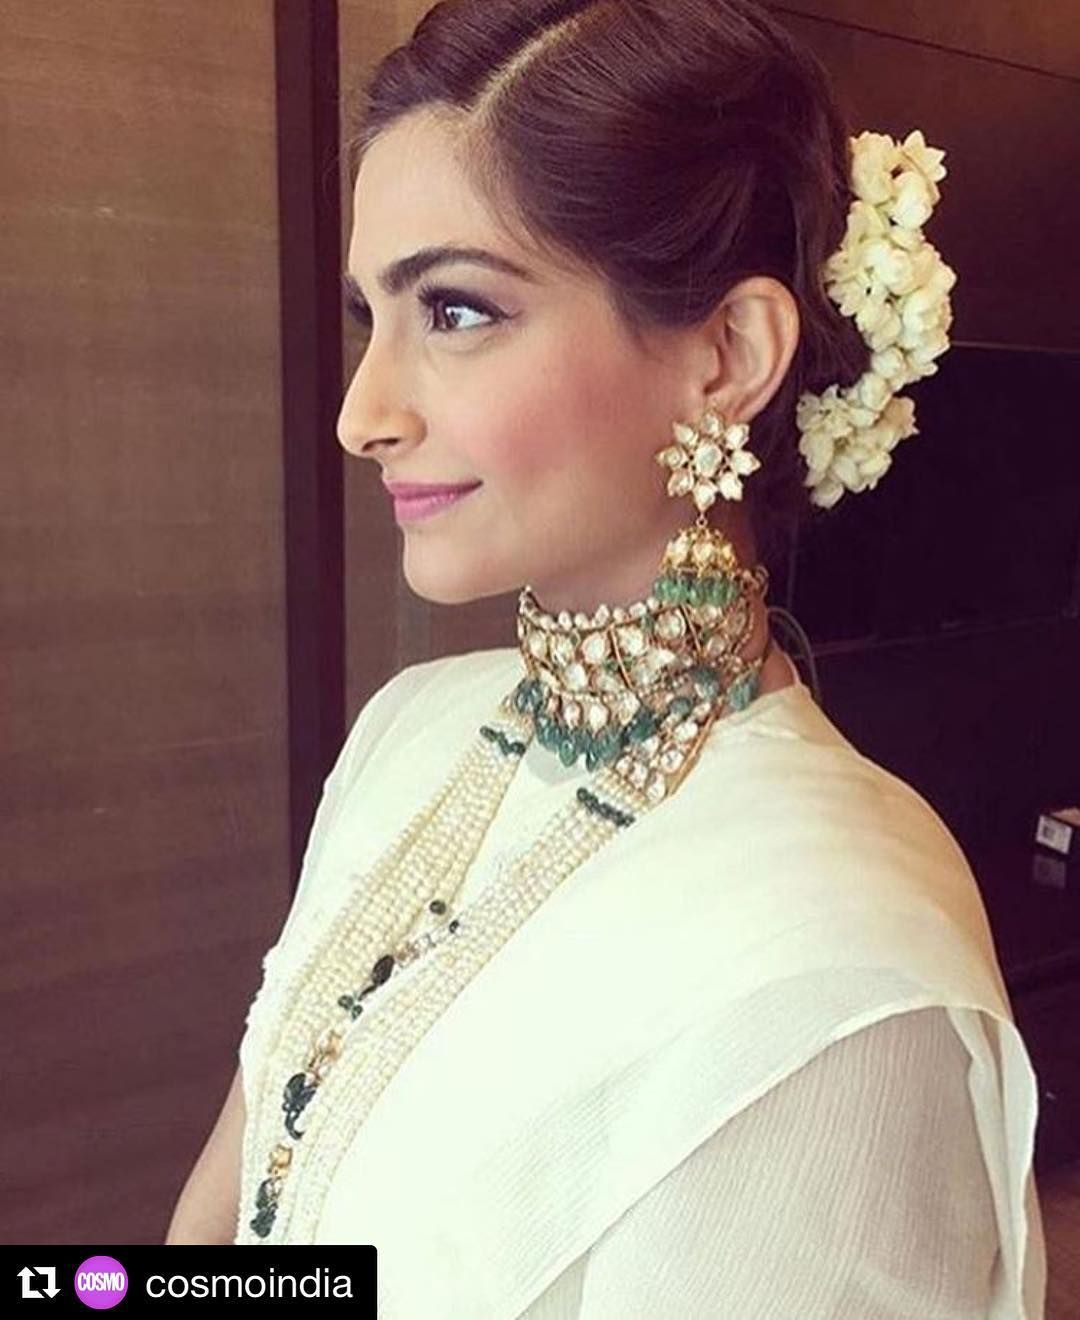 Sonam Kapoor S Hairstyle Is On Fleek For A Wedding Love The Braided Updo Complete With Gajra Makeu Indian Hairstyles Hairdo Wedding Indian Wedding Hairstyles